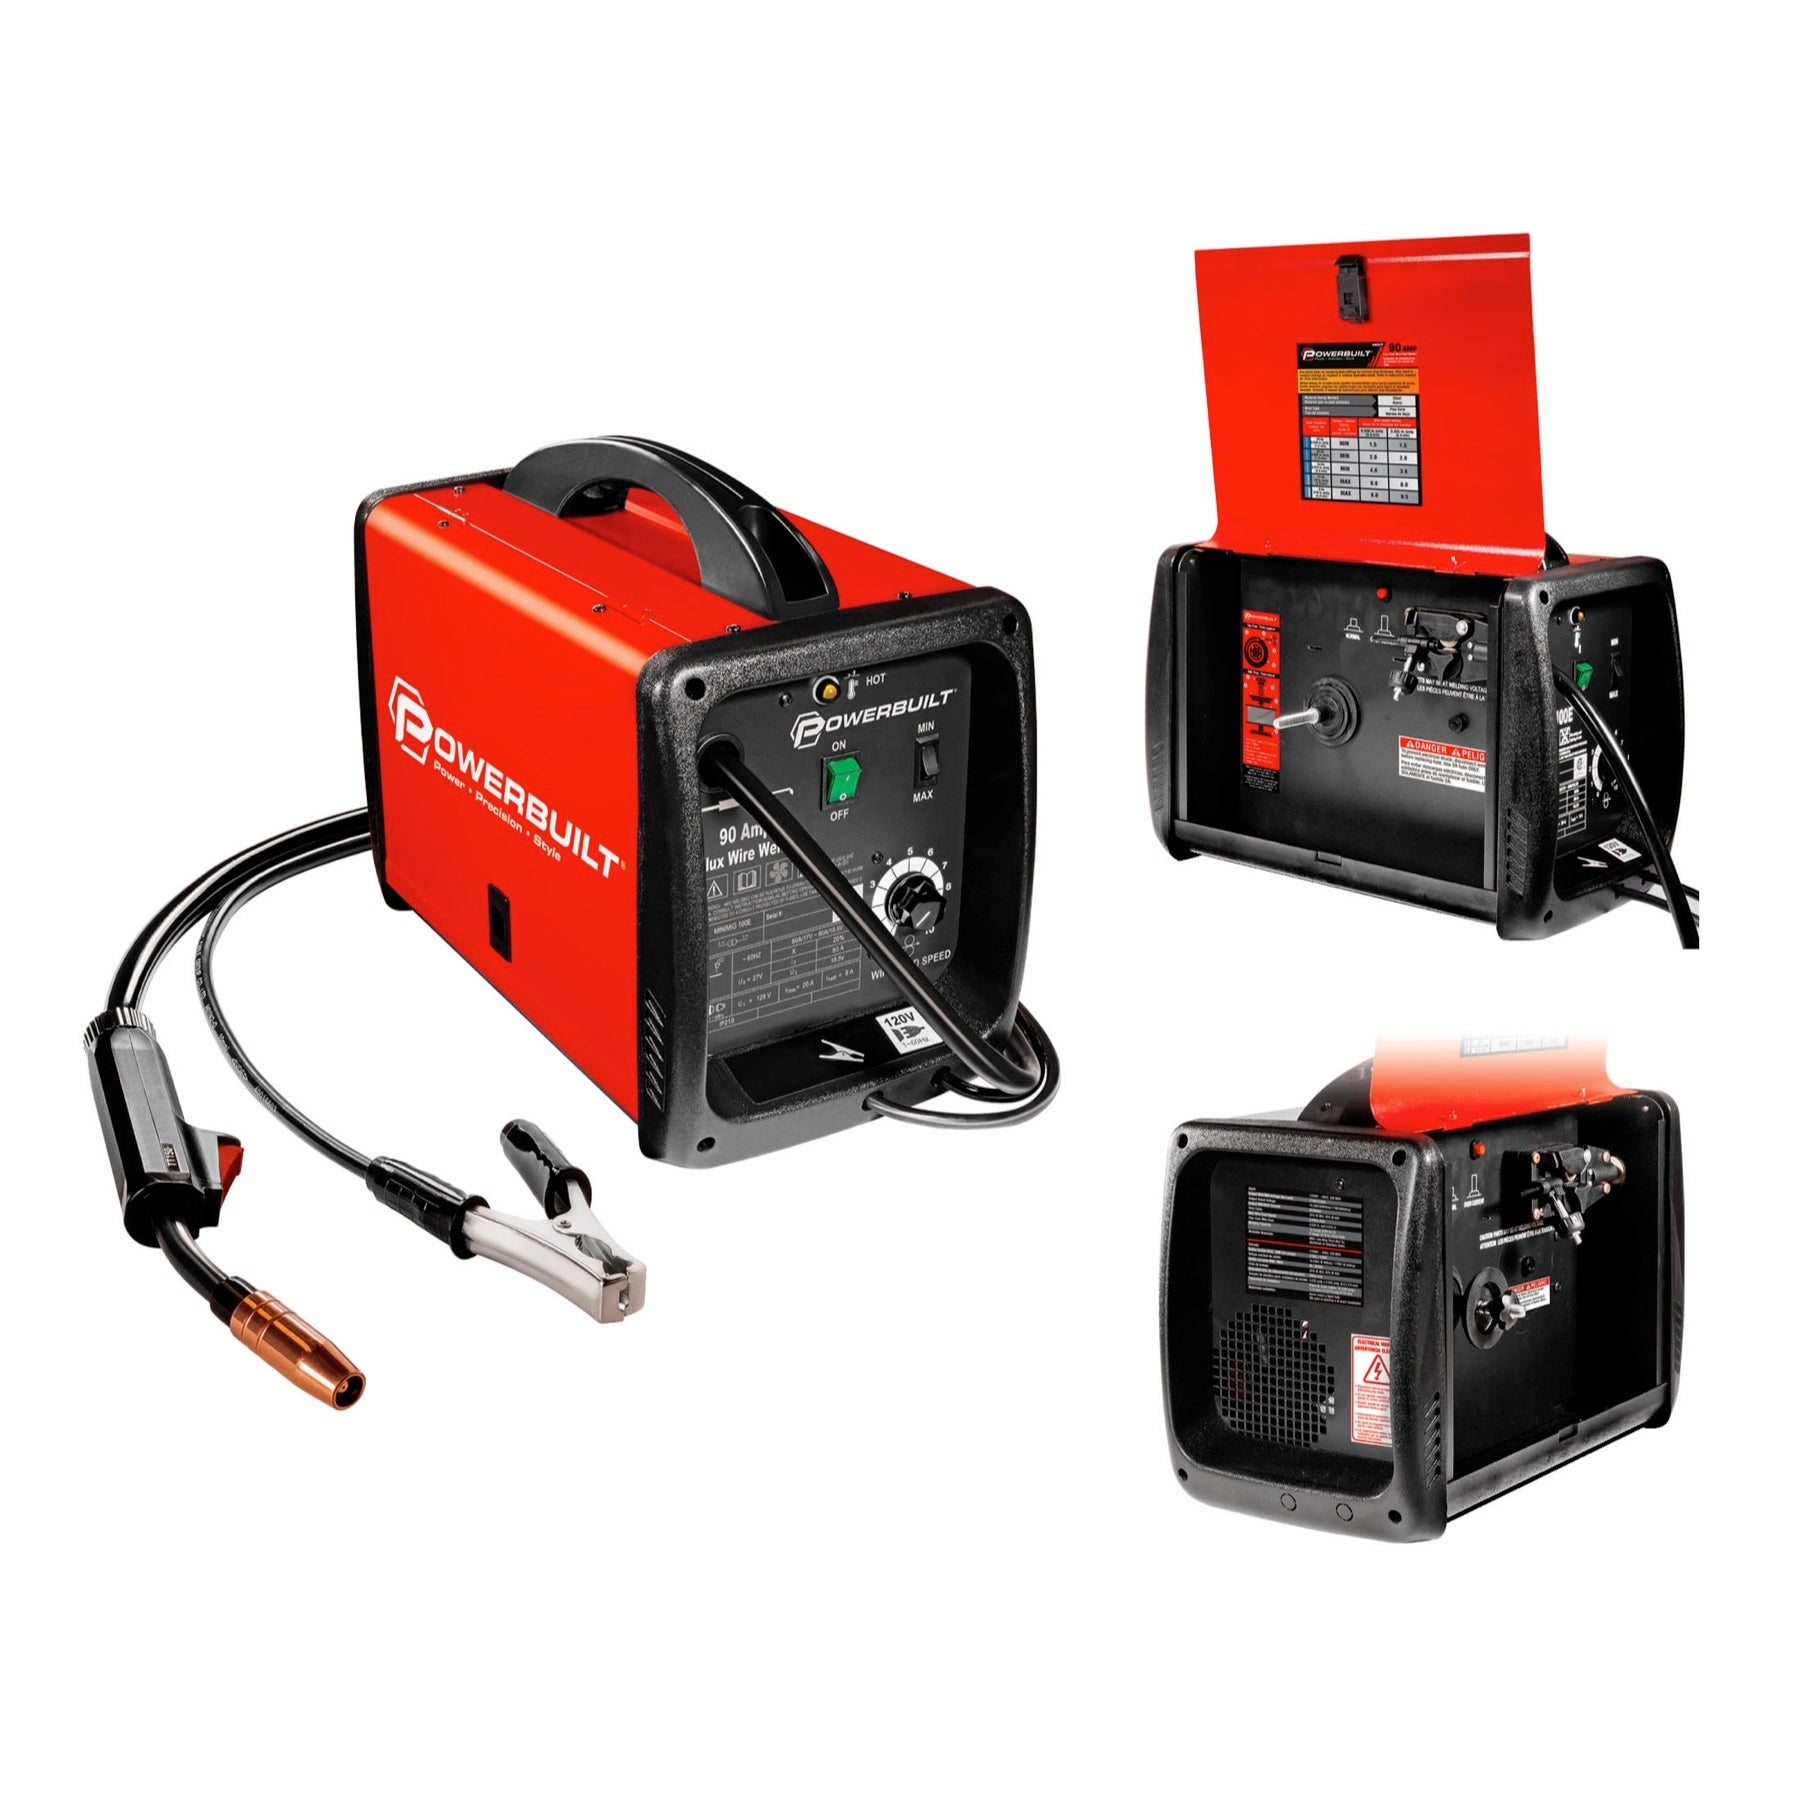 Powerbuilt Mig 90 Amp Flux Core Wire Feed Welder Compact - 240032 ...